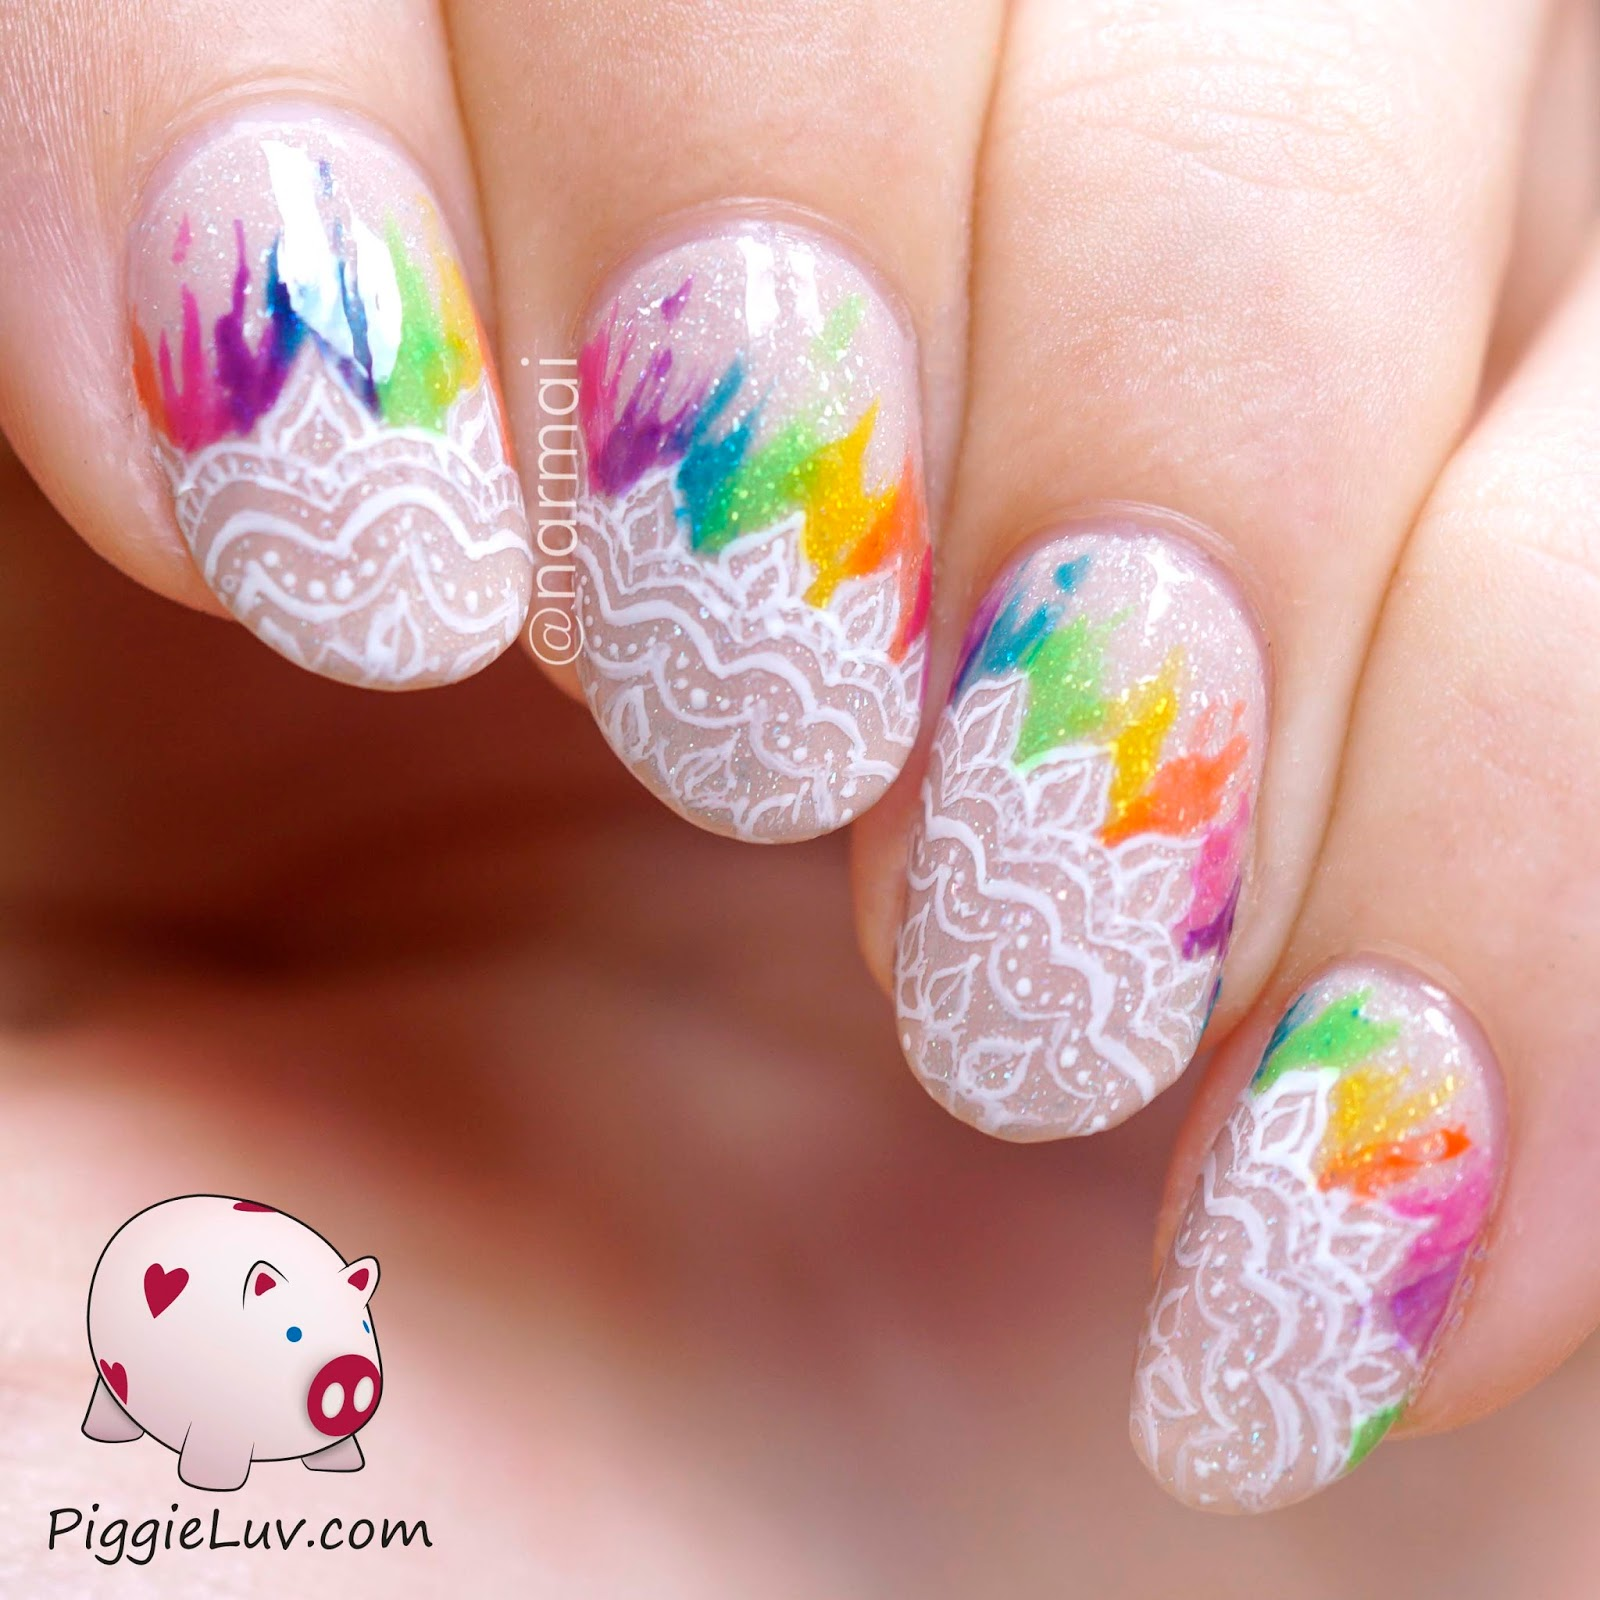 Colorful Nail Art: PiggieLuv: Rainbow Lace Bridal Style Nail Art With OPI